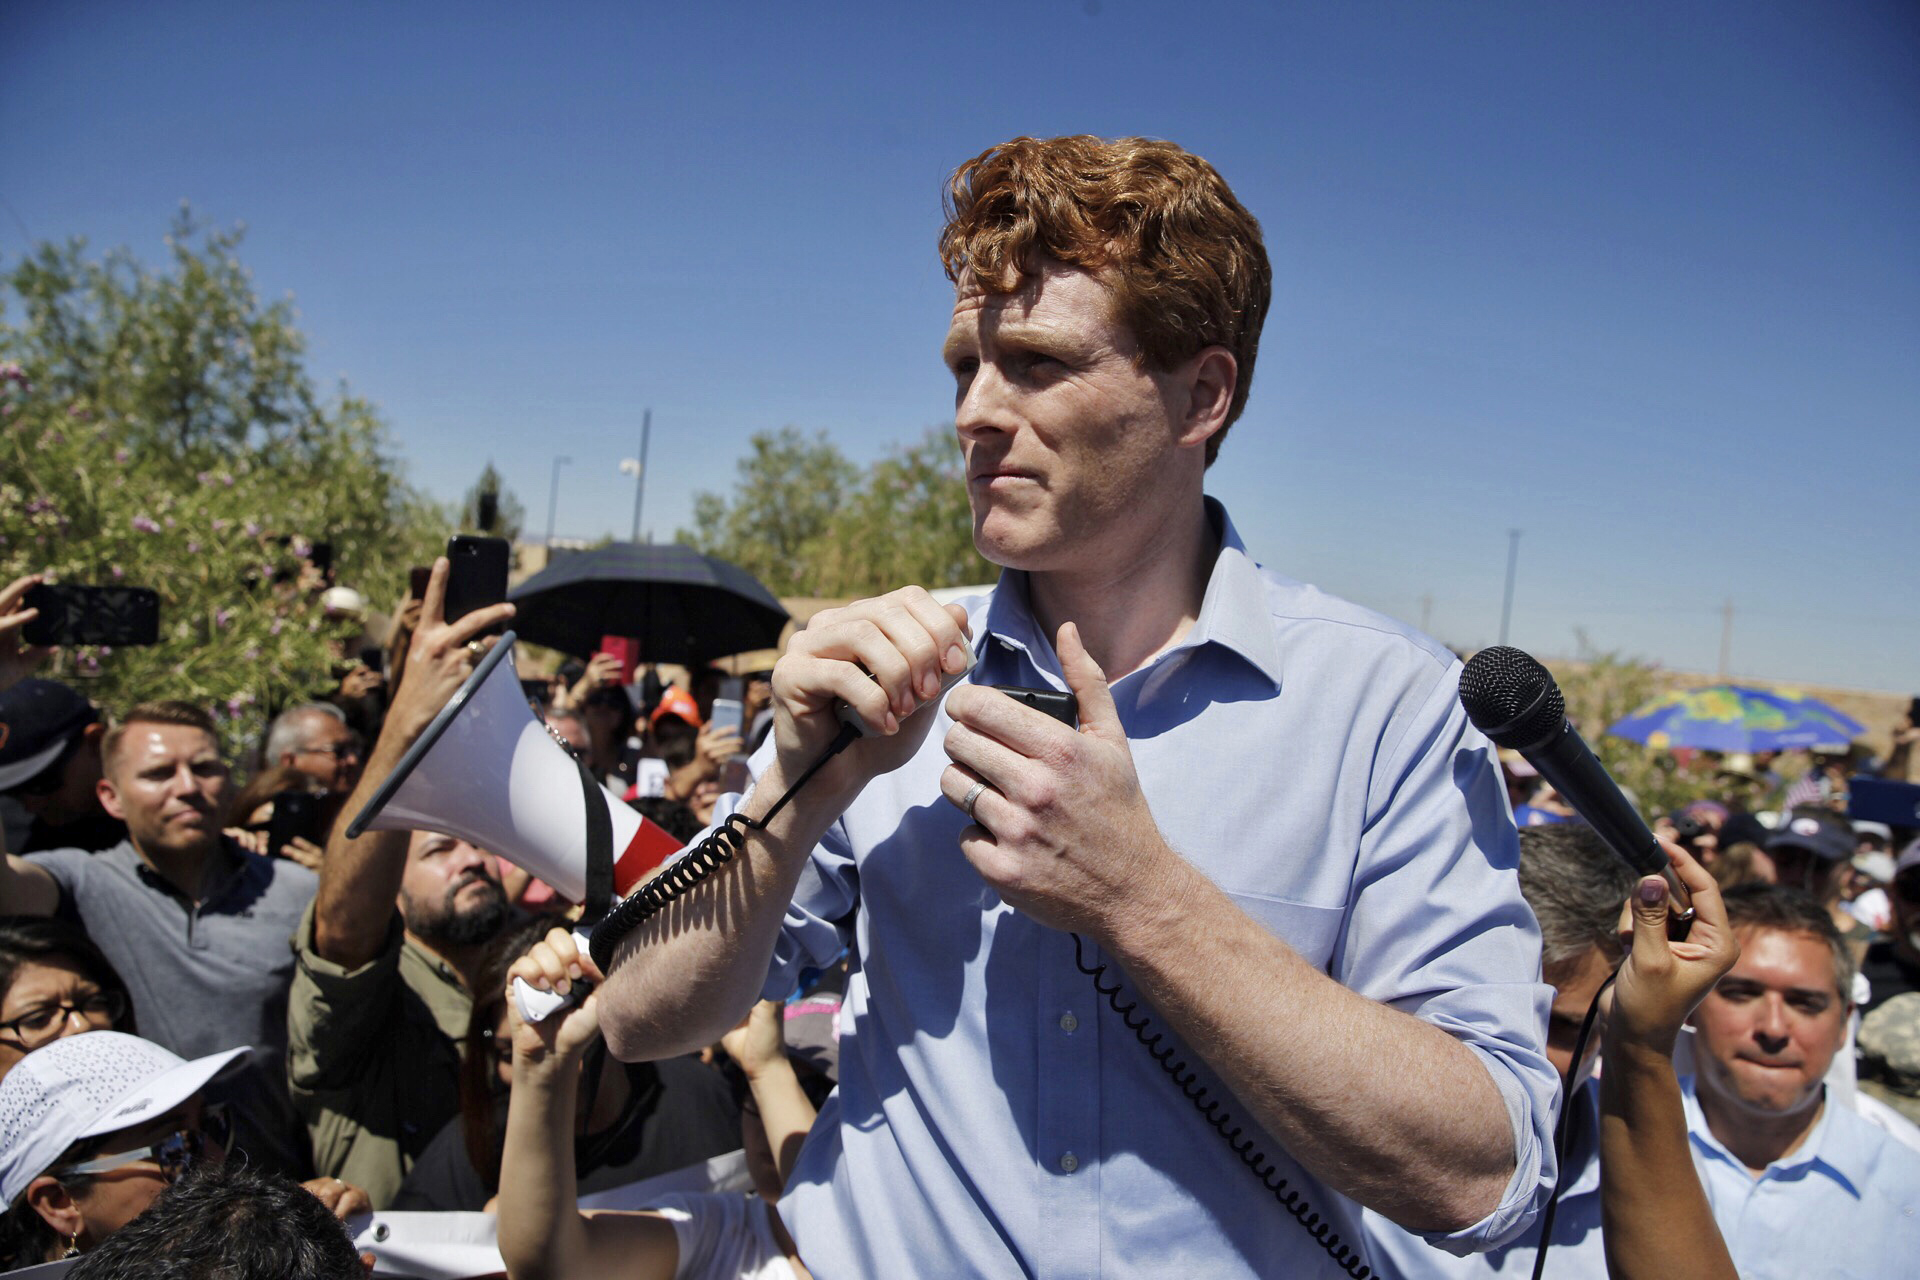 Congressman Joe Kennedy III speaks during a visit to a detention center where refugees are being detained and mistreated by the US government.